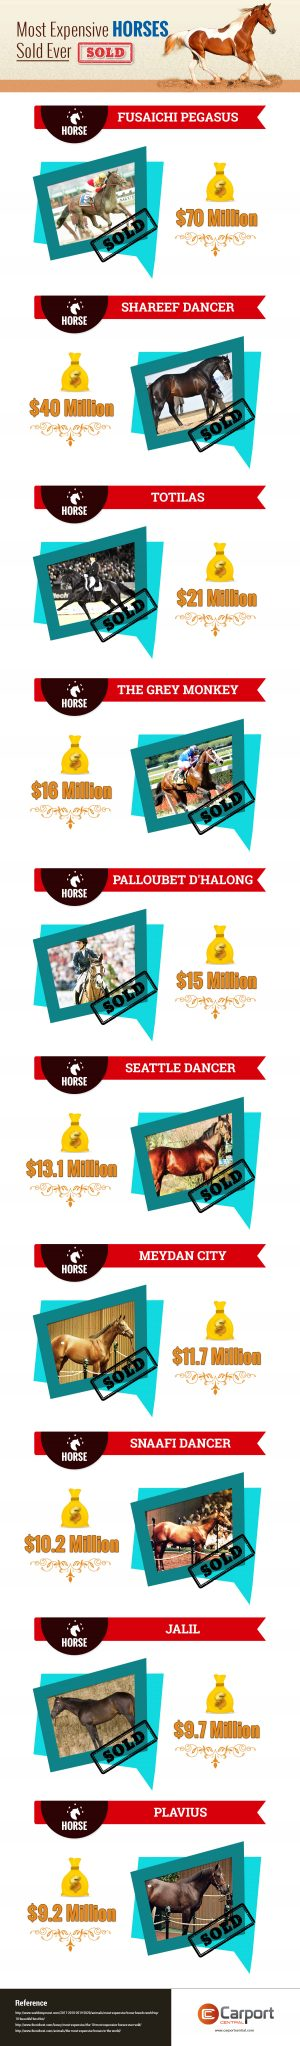 Most Expenses Horses Sold Ever.